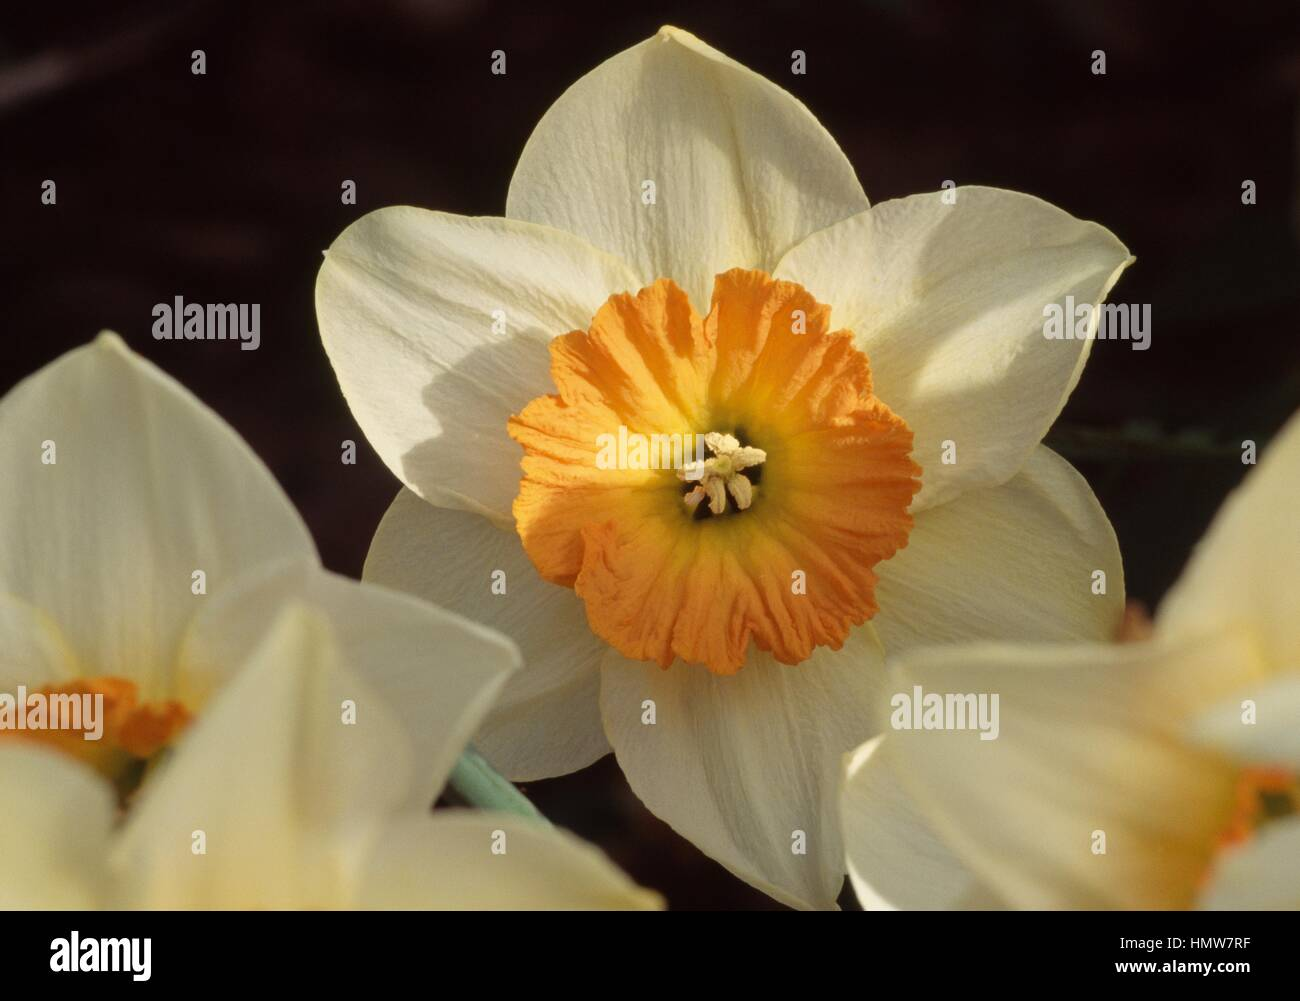 Narcissus or daffodil (Narcissus Amor), Amaryllidaceae. - Stock Image